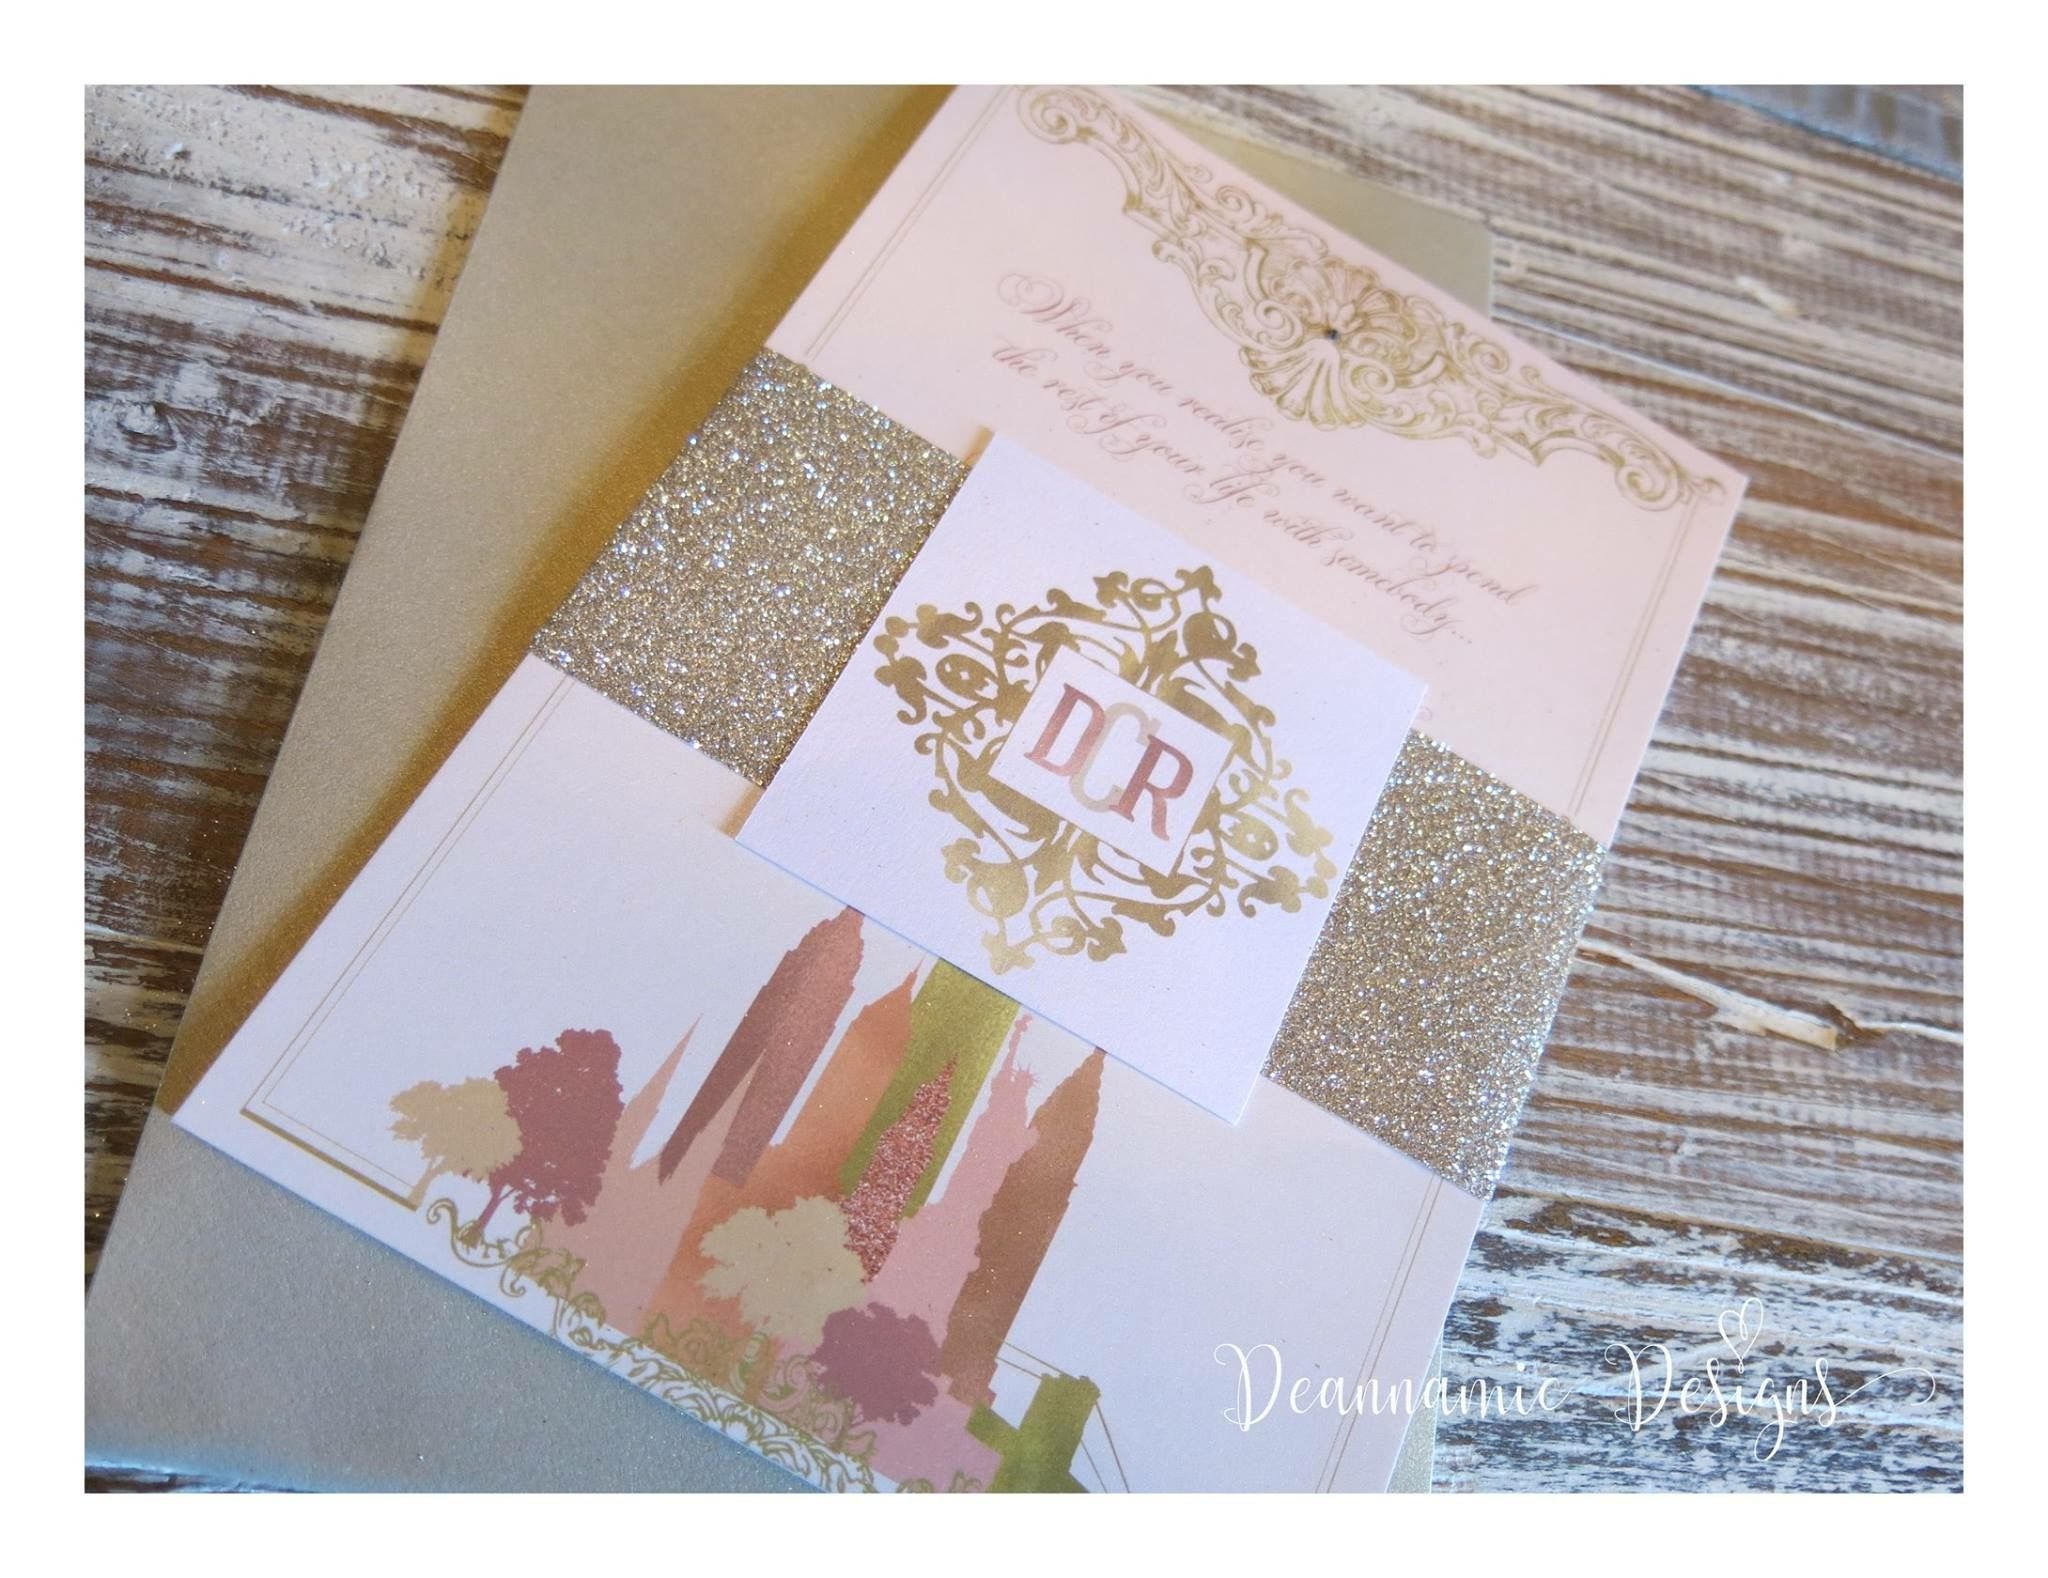 Rose Gold New York themed stationery set Deannamic Designs